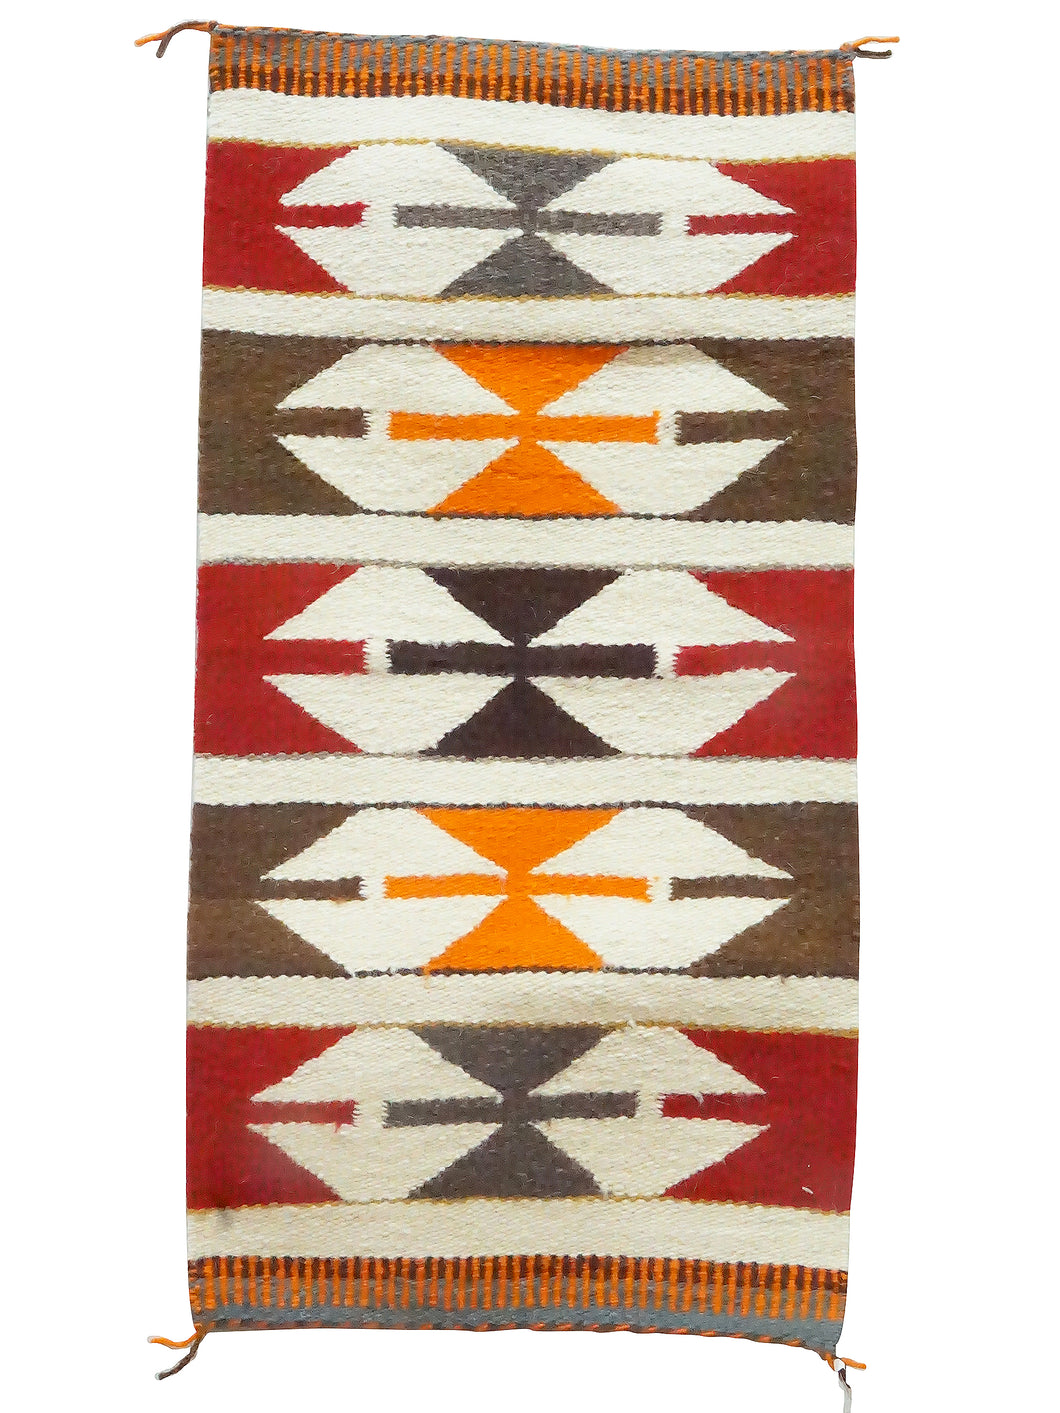 Gallup Throw Rug, Gray, White, Red, Brown, Navajo Handmade, 36 1/2